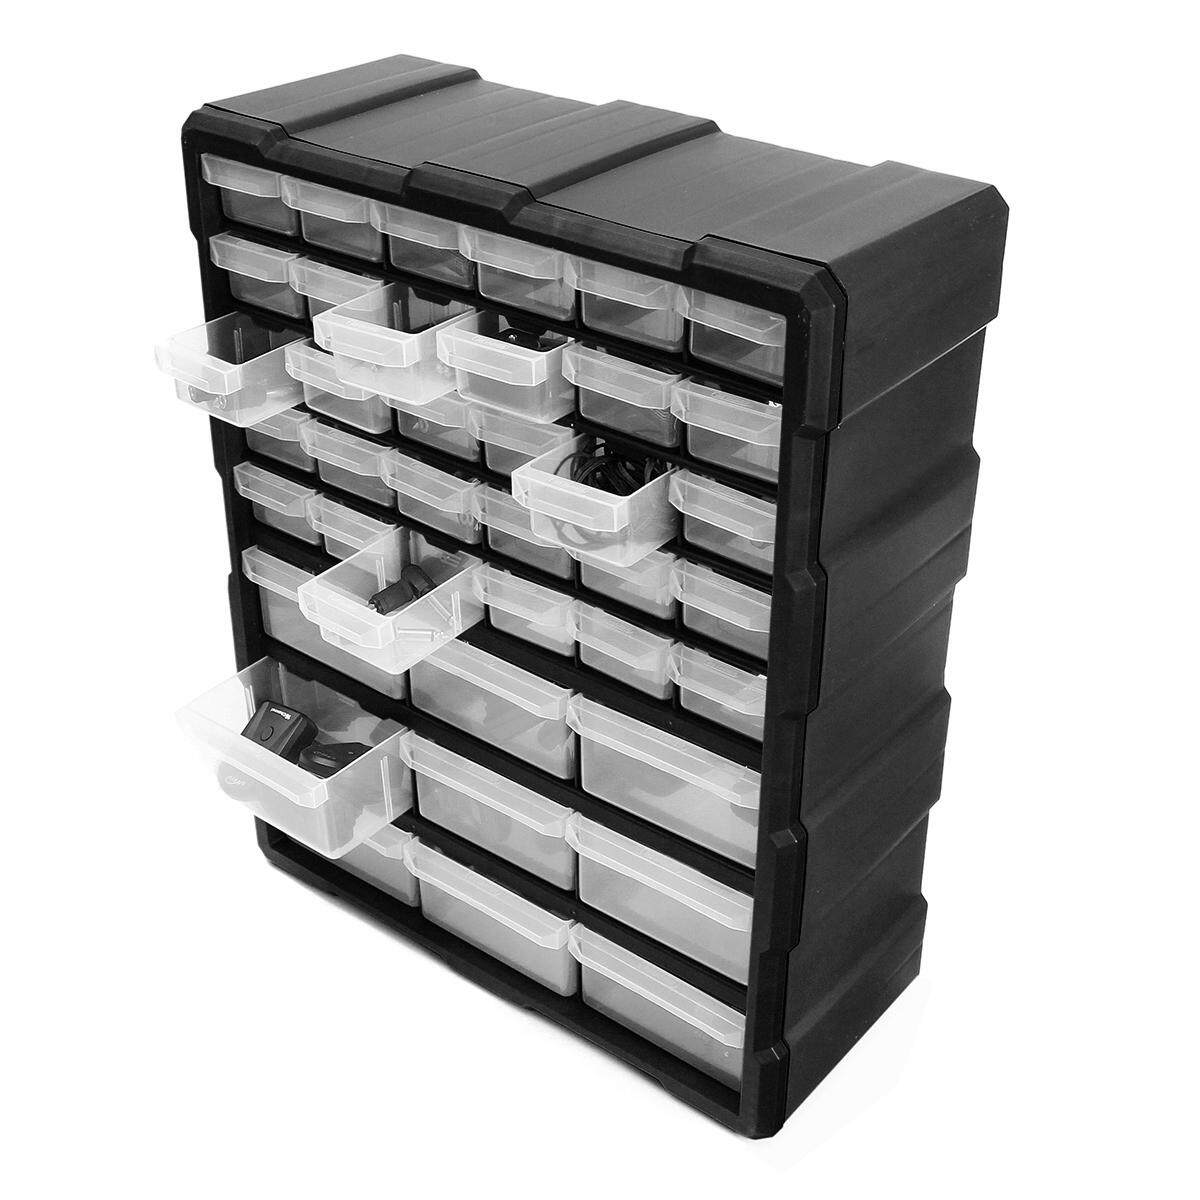 39 Multi Drawer Storage Box Hardware Storage Cabinet Containing Box For DIY Craft Screw - intl